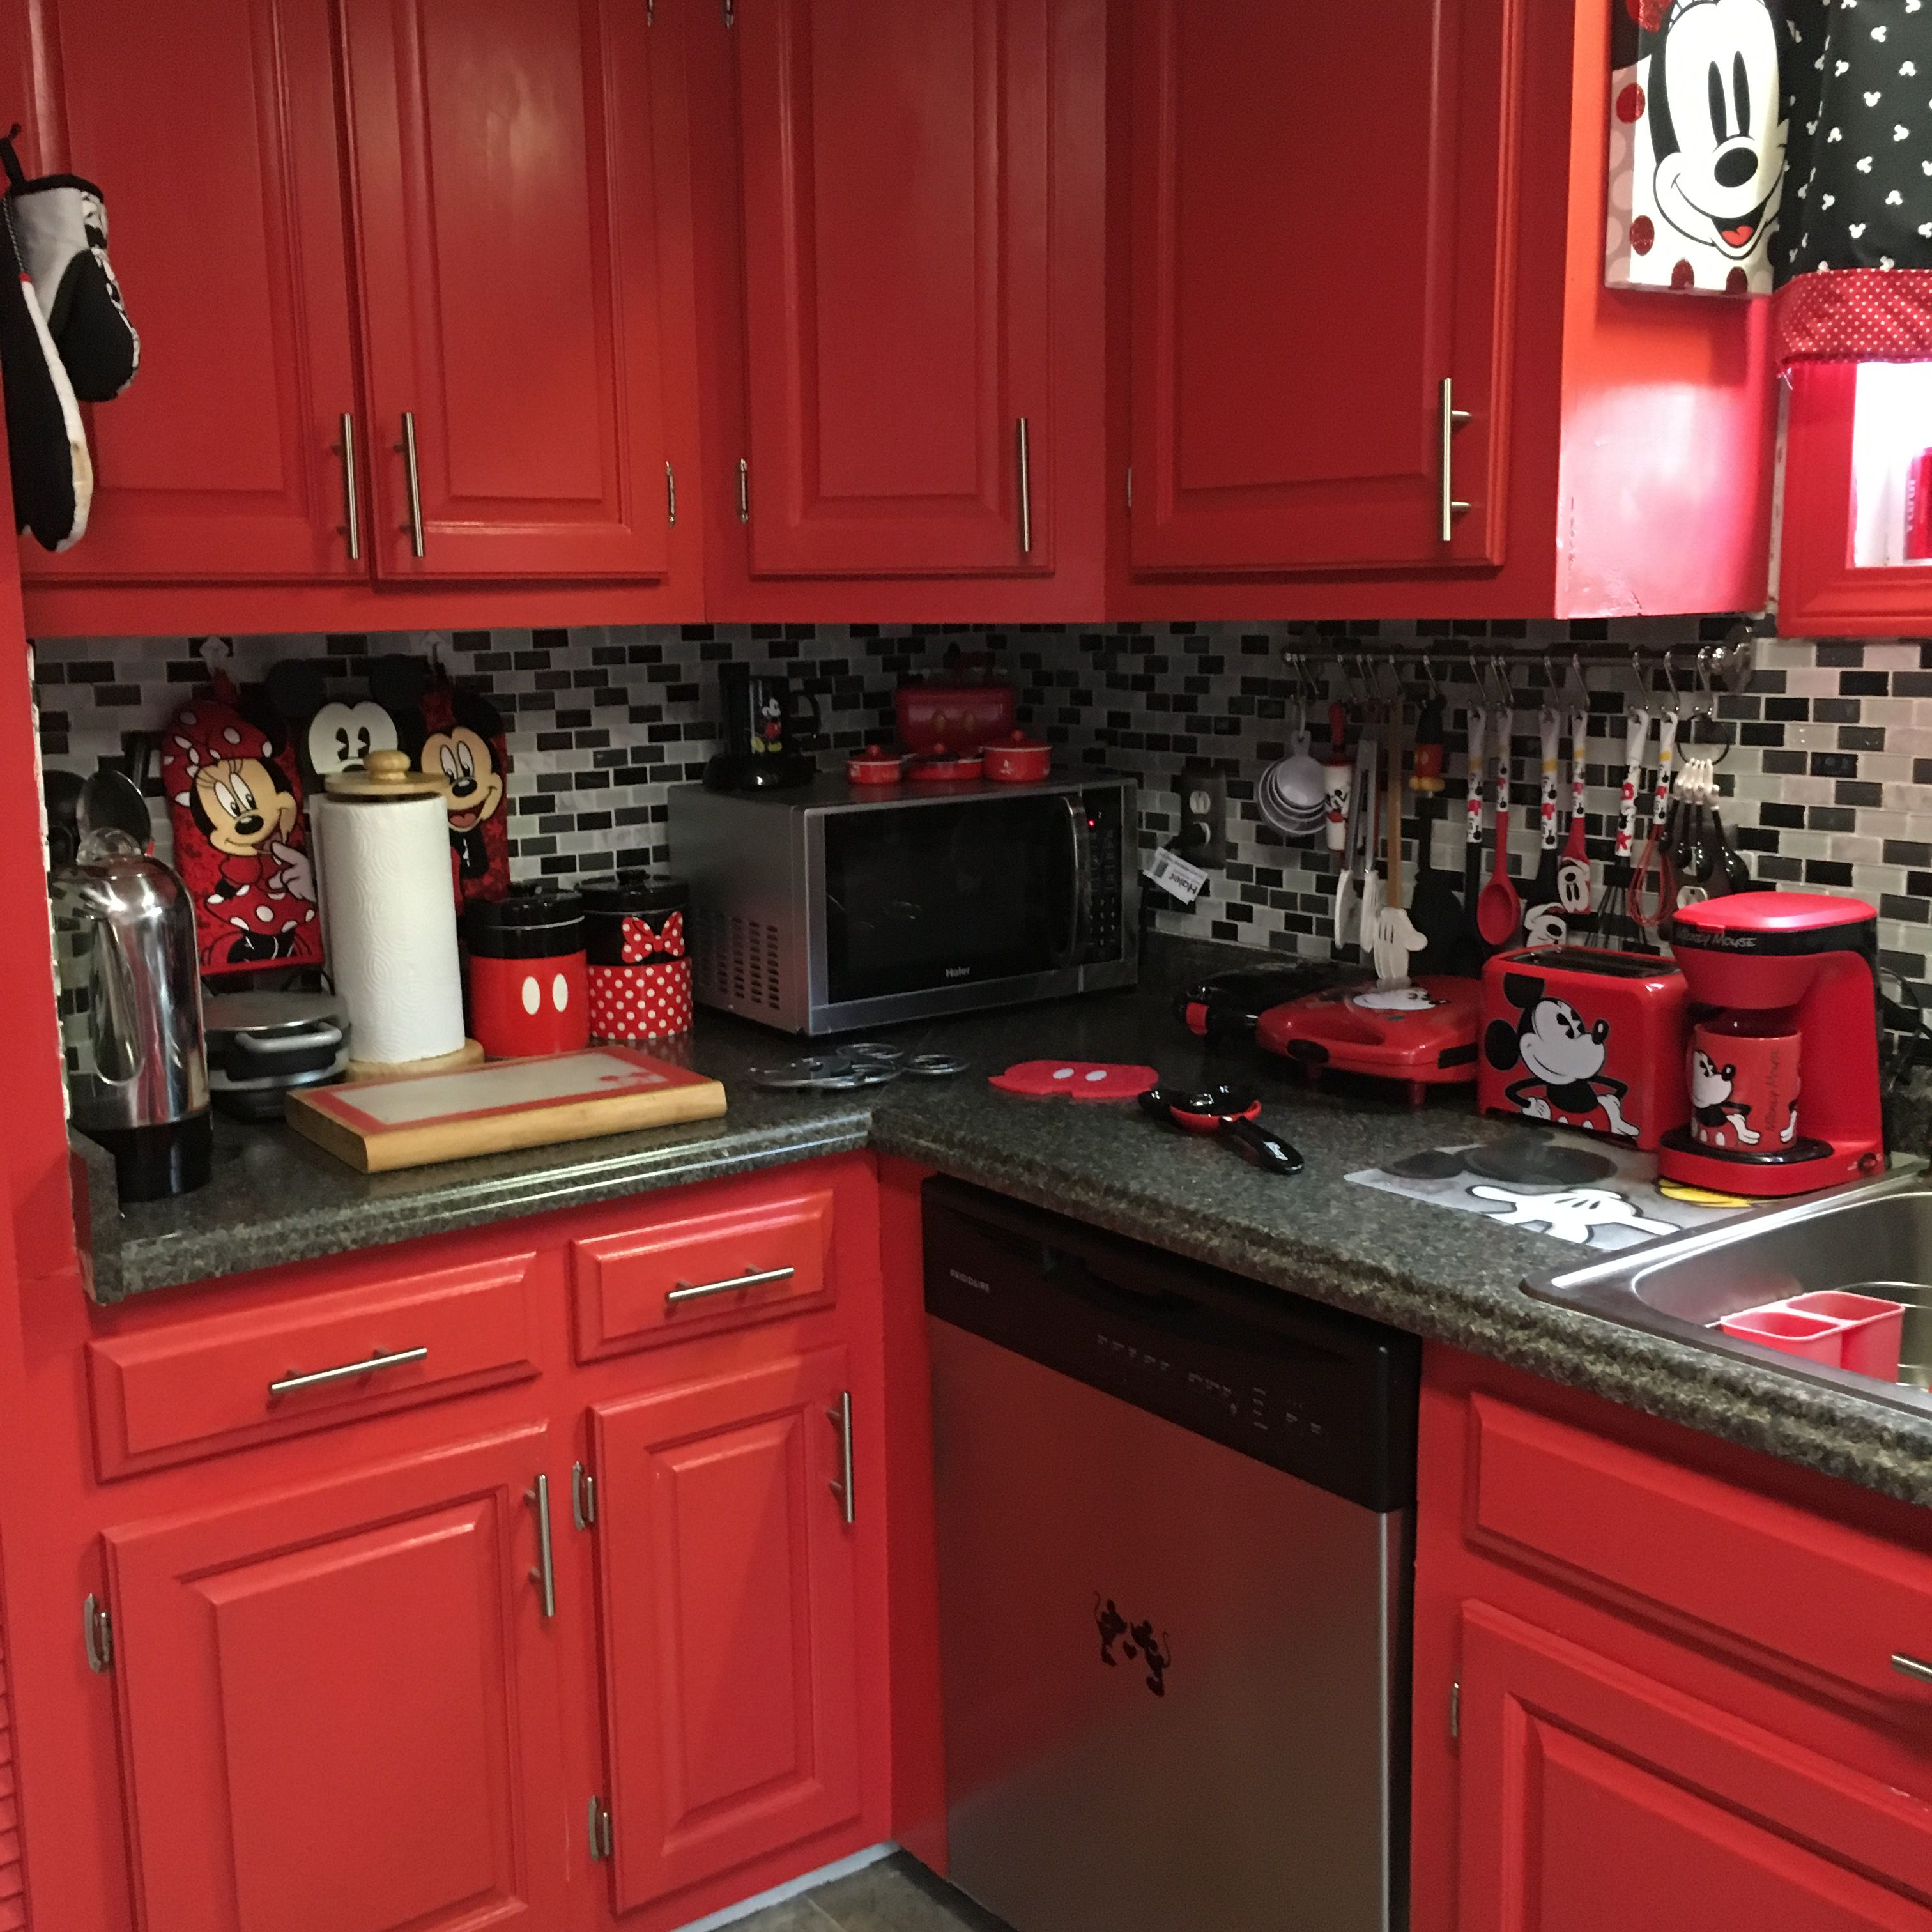 Mickey and Minnie Mouse kitchen #disneykitchen